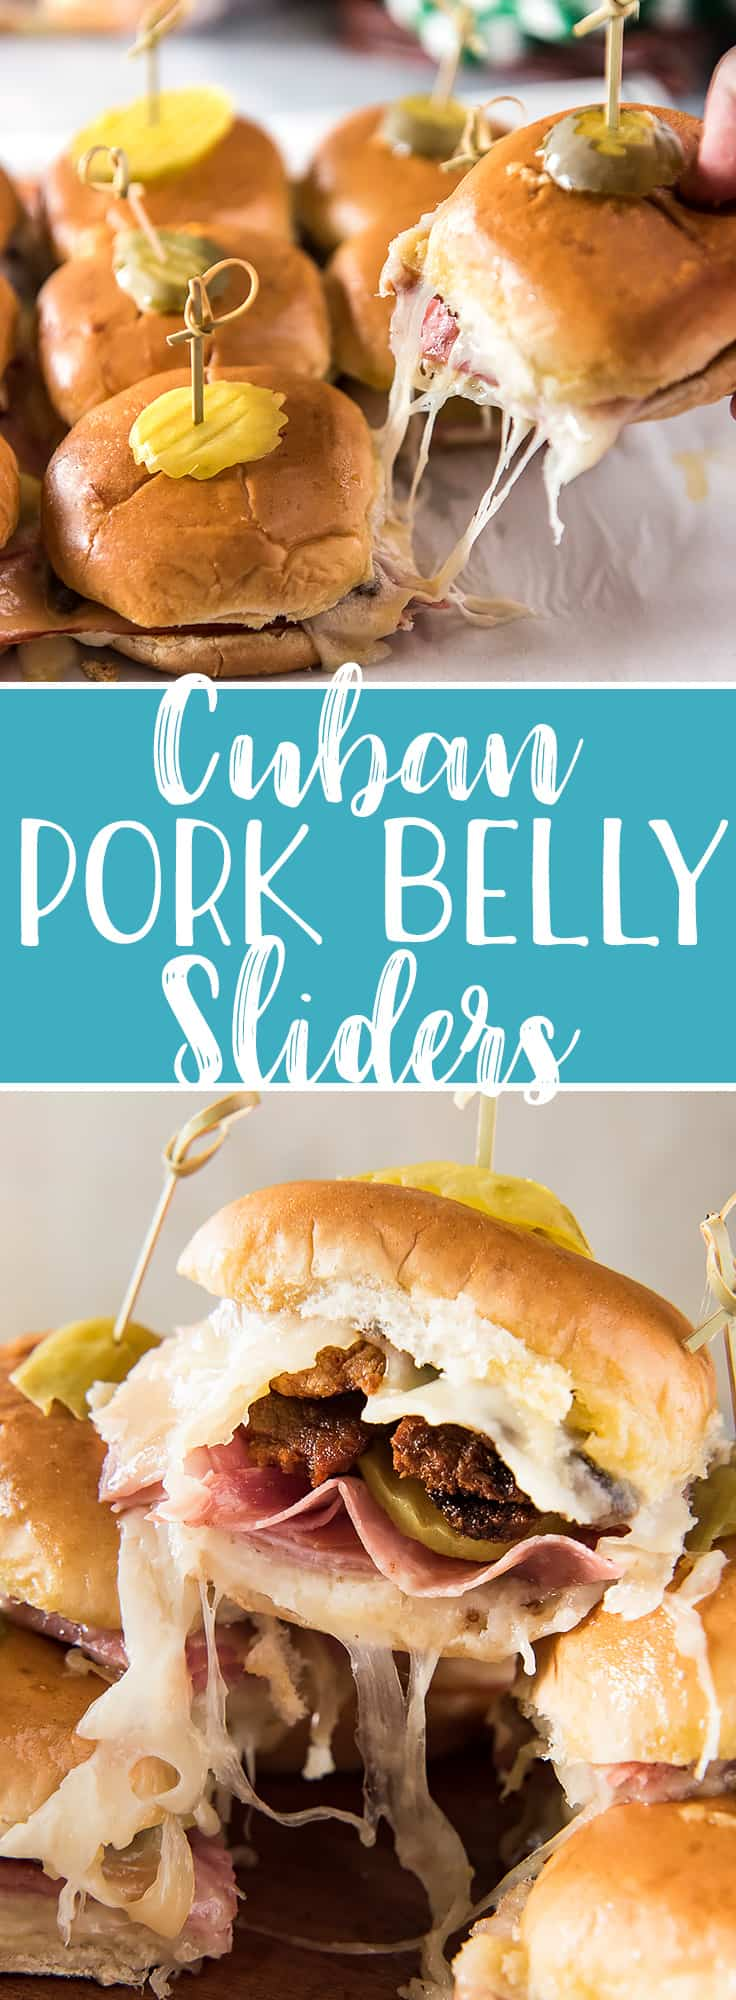 Your whole crowd is going to love these Cuban Pork Belly Sliders! The classic flavor of a Cuban sandwich in a convenient, fun little slider, then elevated with crispy bites of fried pork belly and a healthy dose of garlic butter.